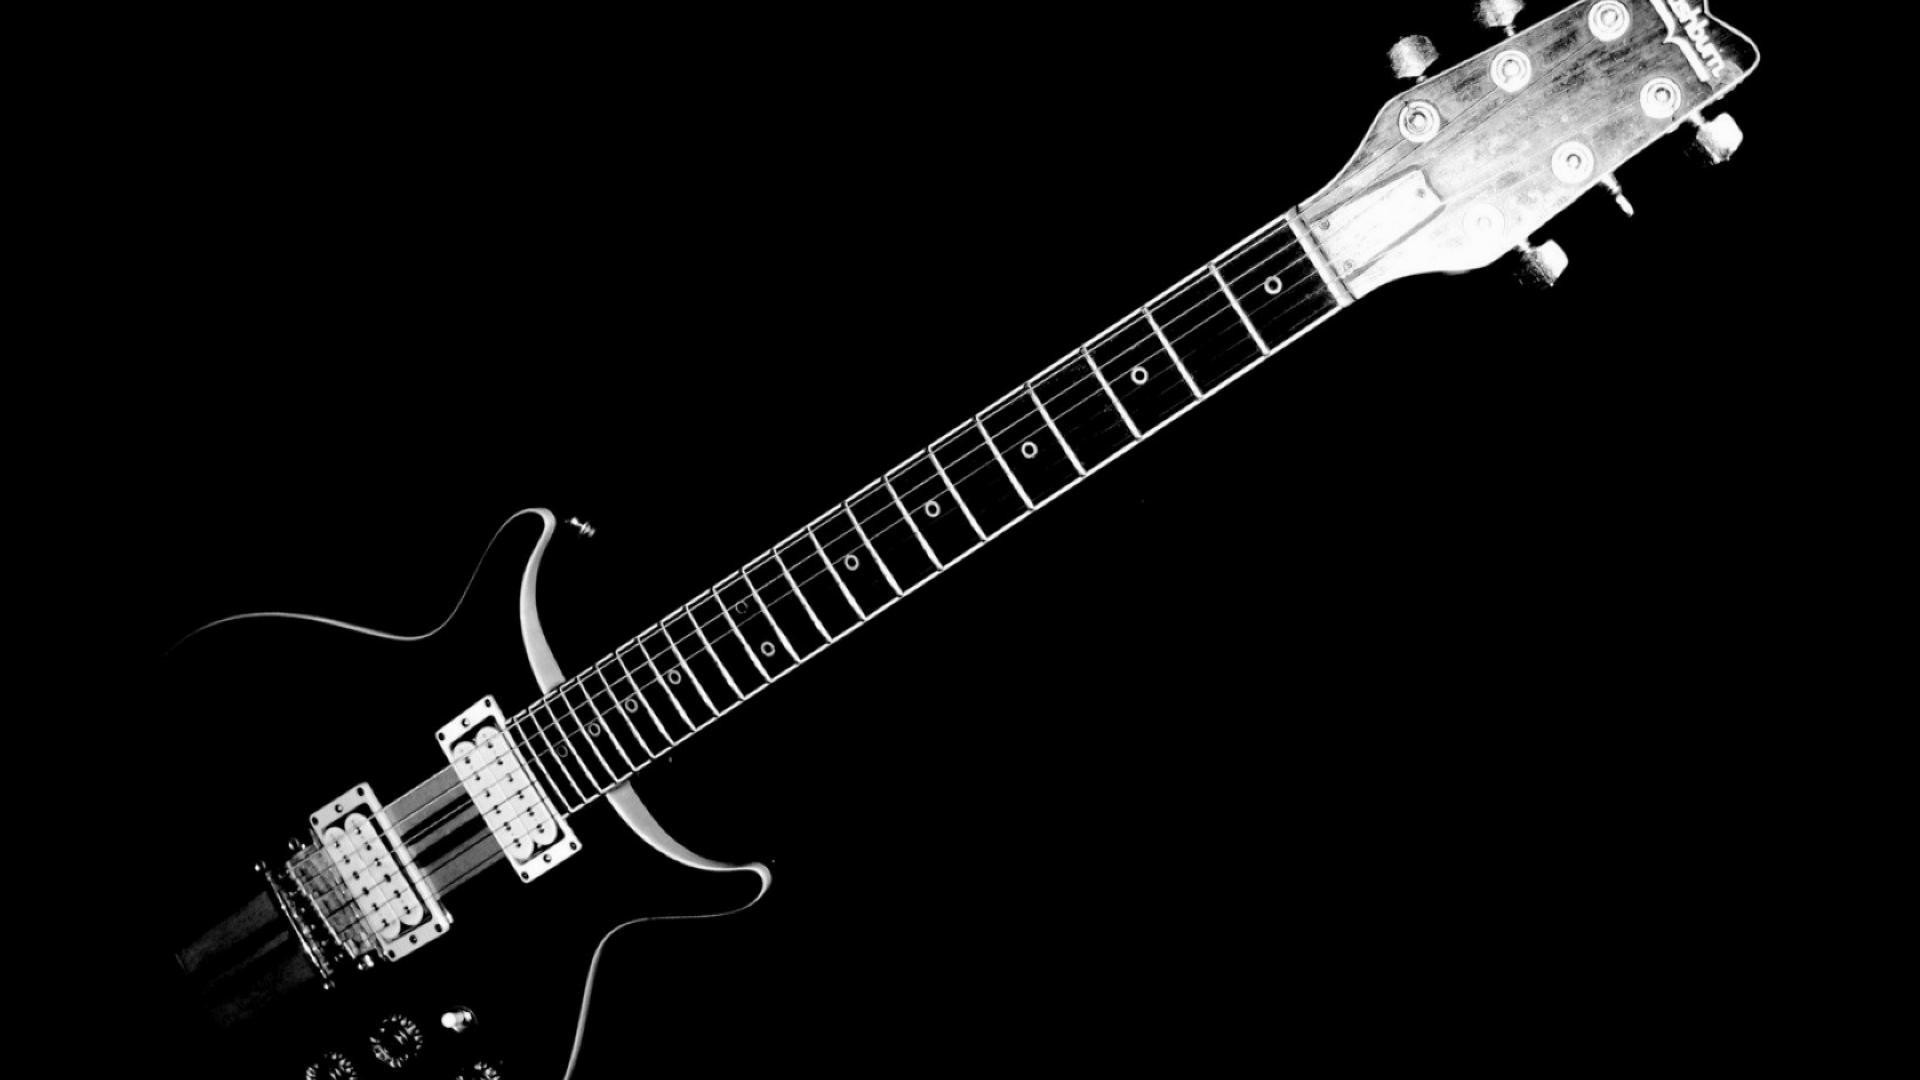 Black-guitar-music-hd-wallpapers-background